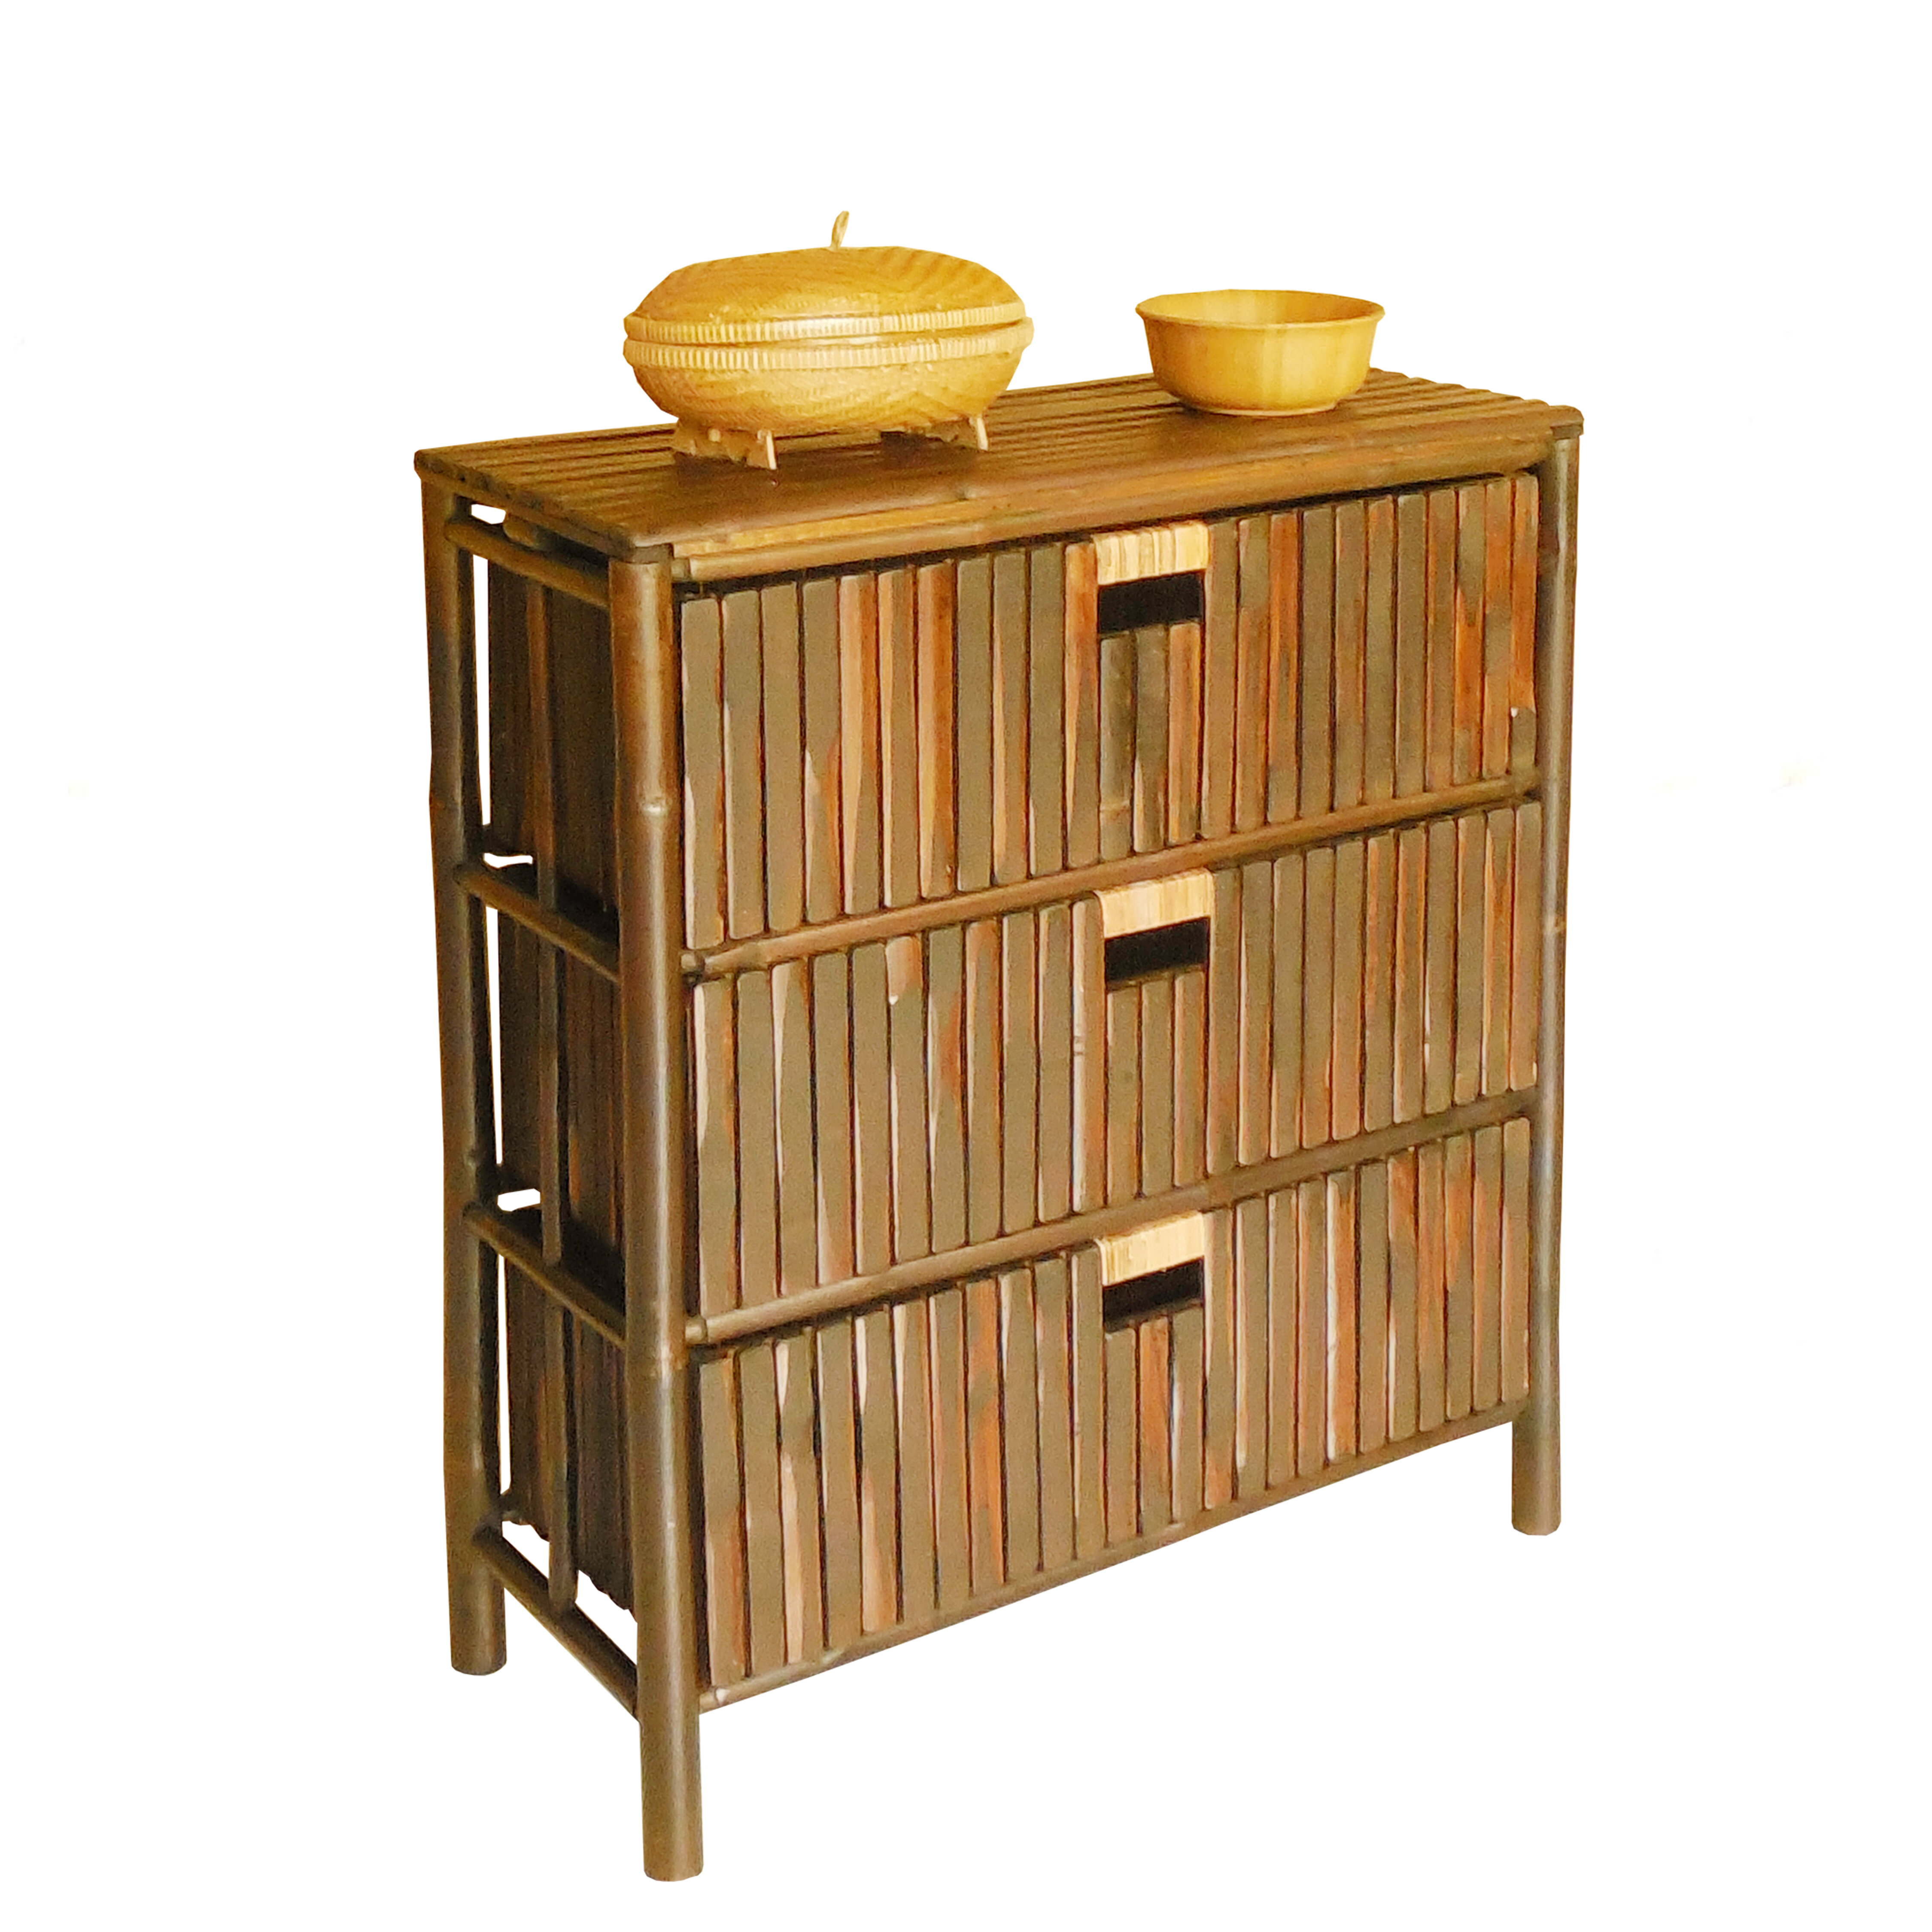 w img copy trash tilt triple out storage drawer shelf top drawers size recycling with c and of draw bin elegant dual products farmhouse